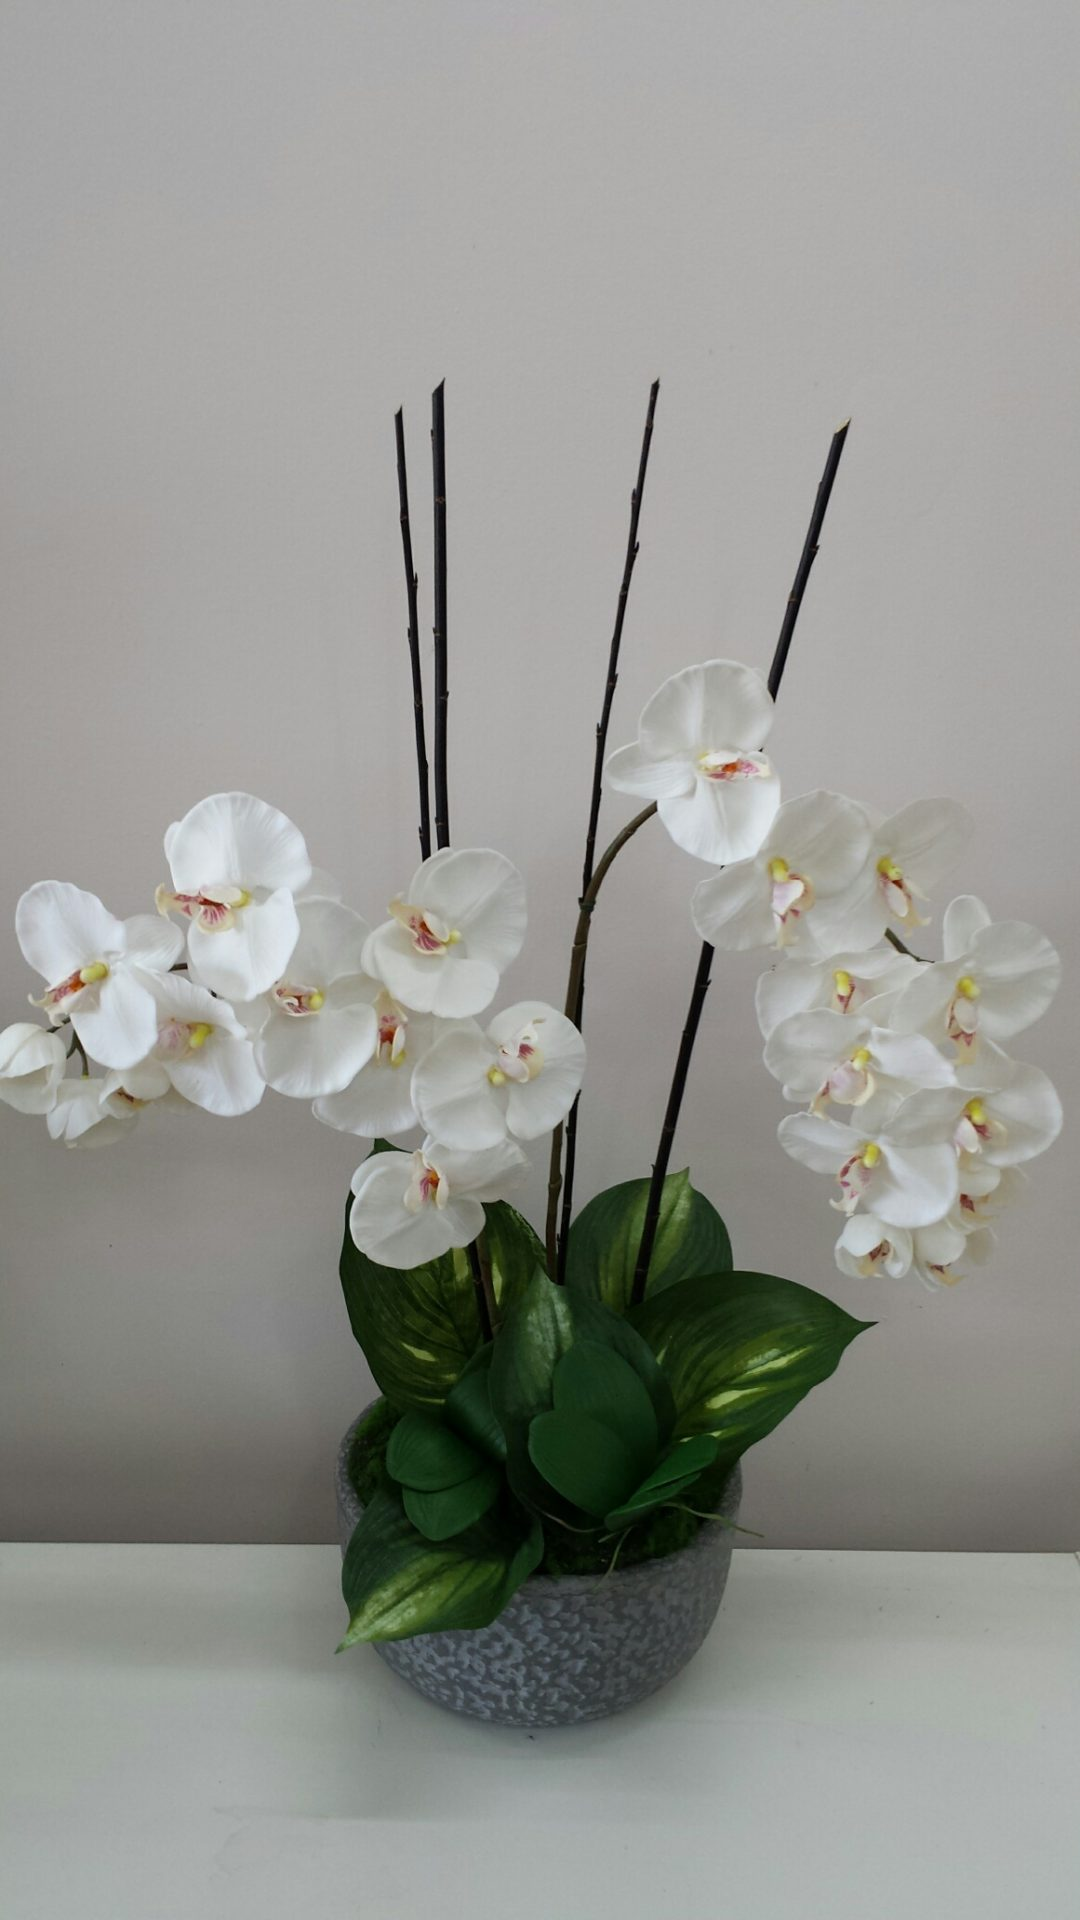 Phalaenopsis Orchid in stone ceramic pot